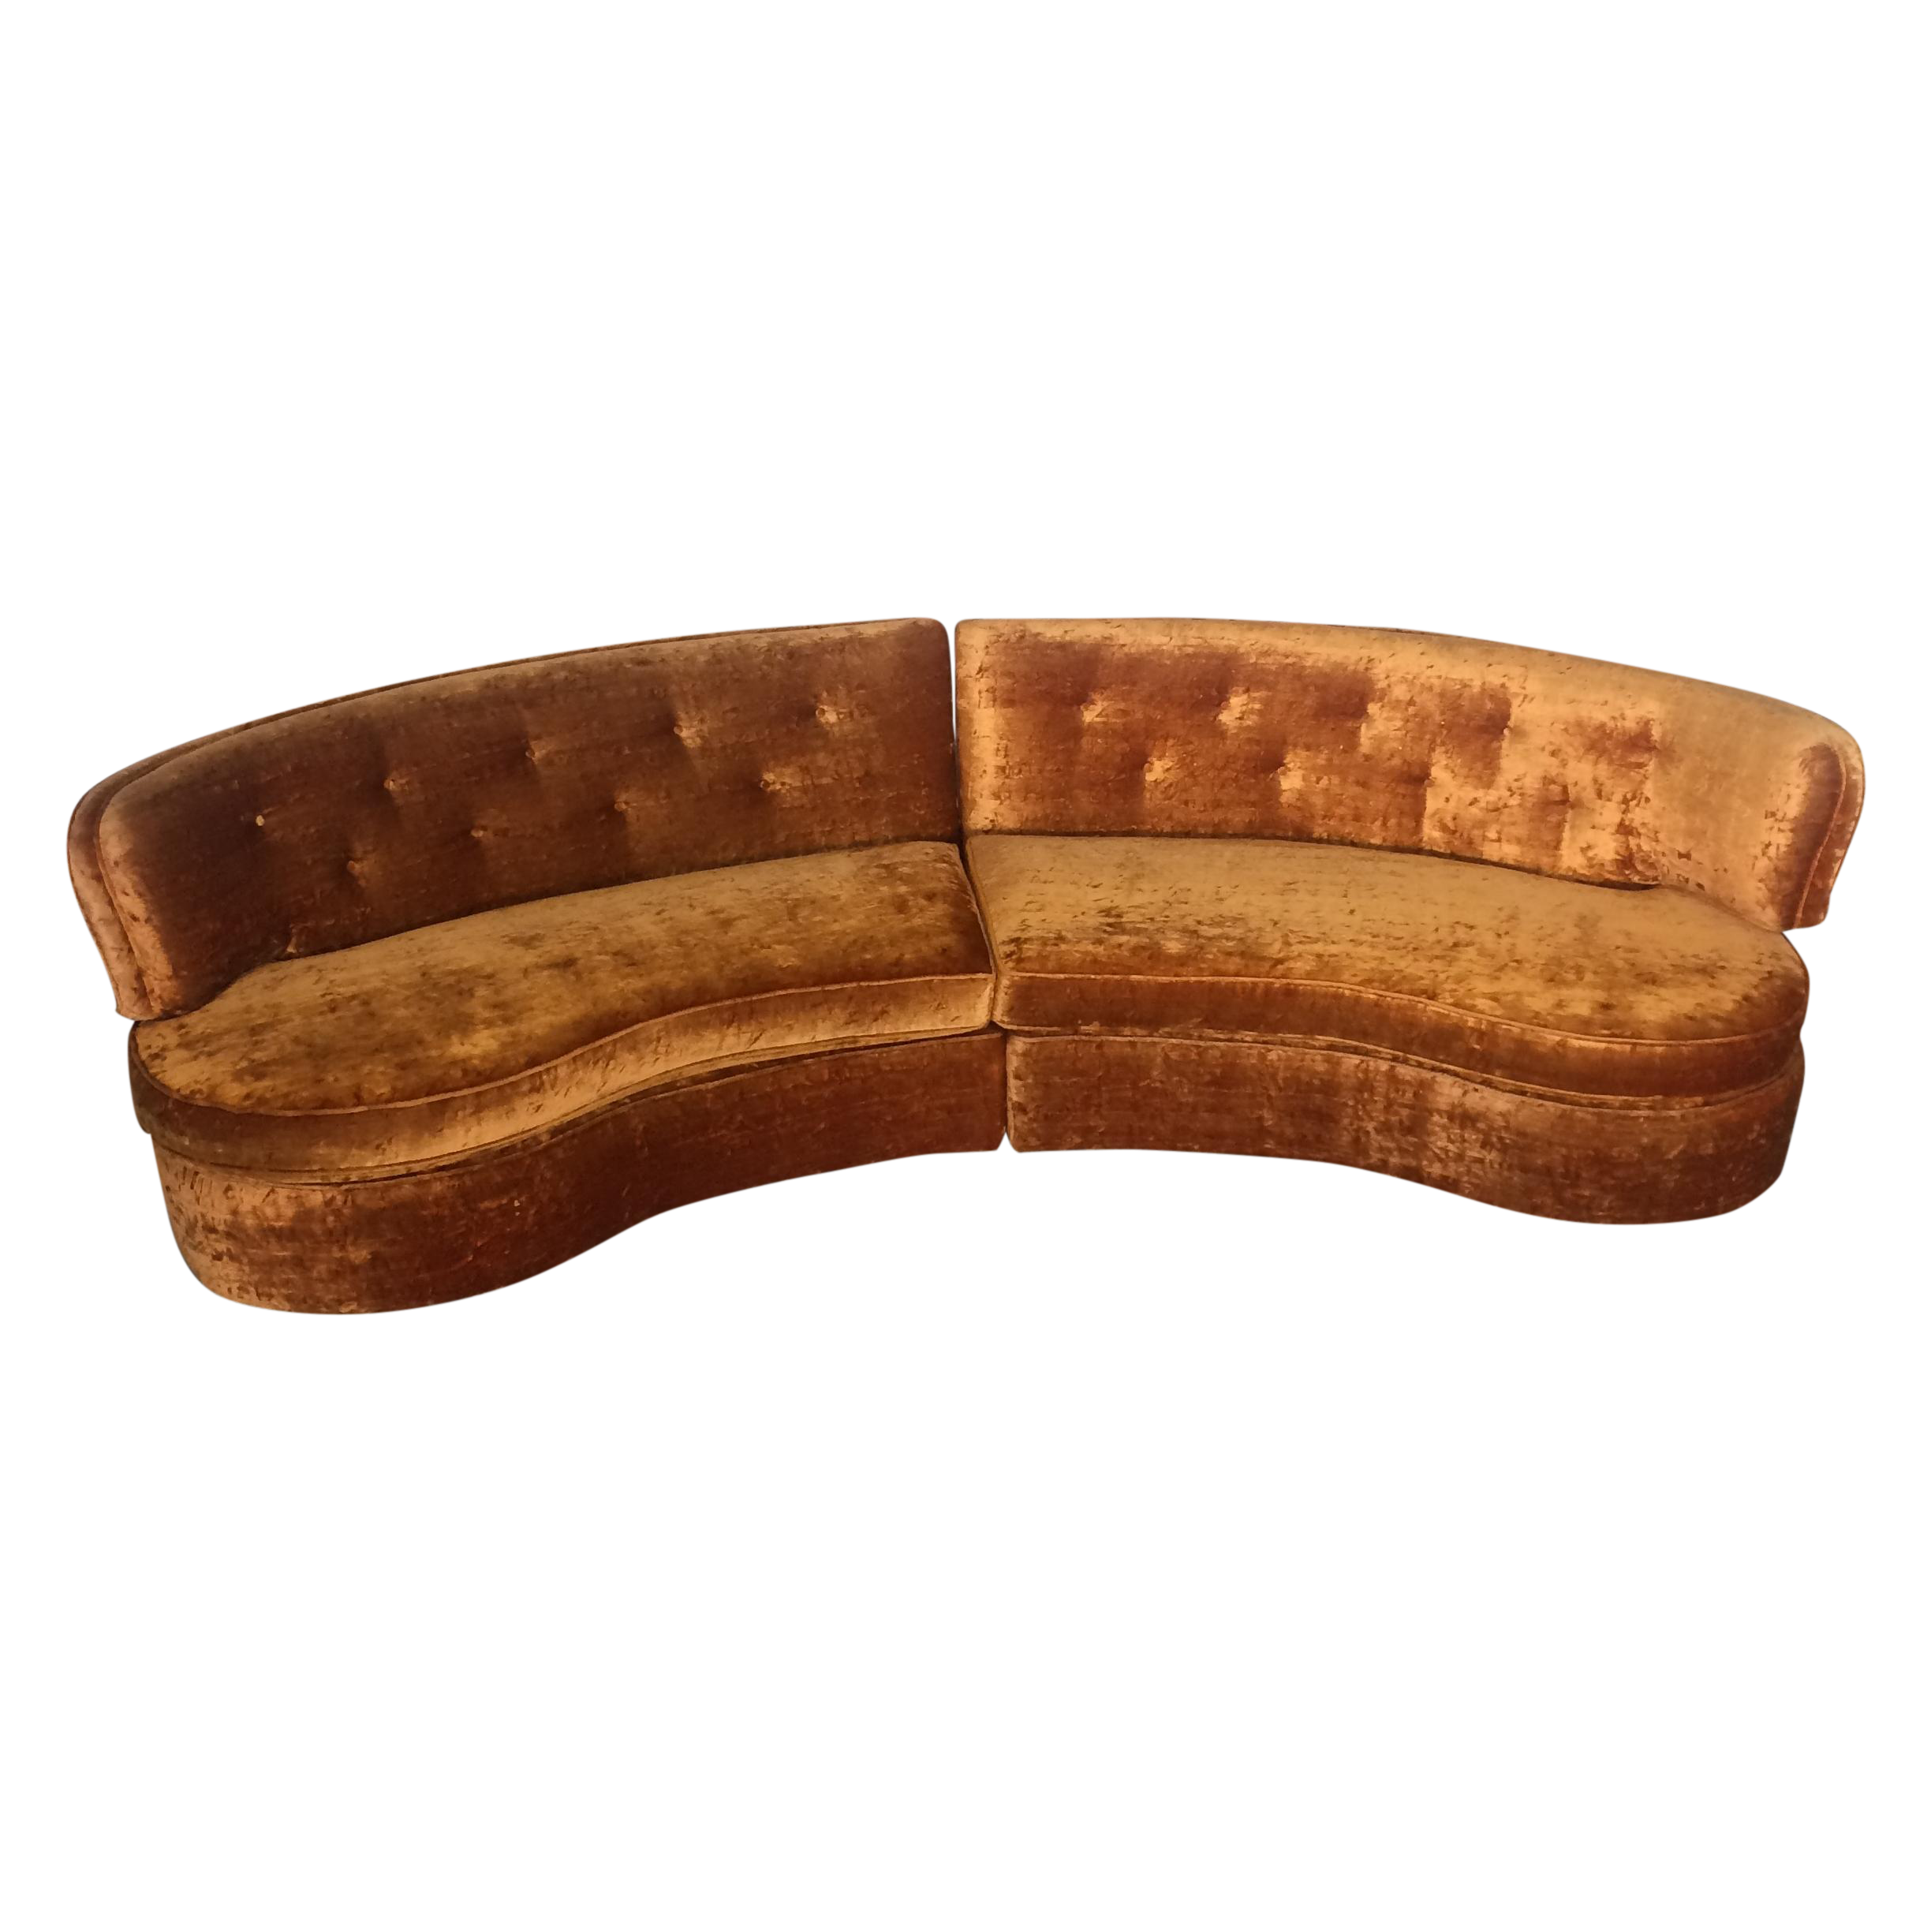 Fascinating sectional couches for sale with cushions and wooden legs for home furniture ideas with cheap sectional couches for sale